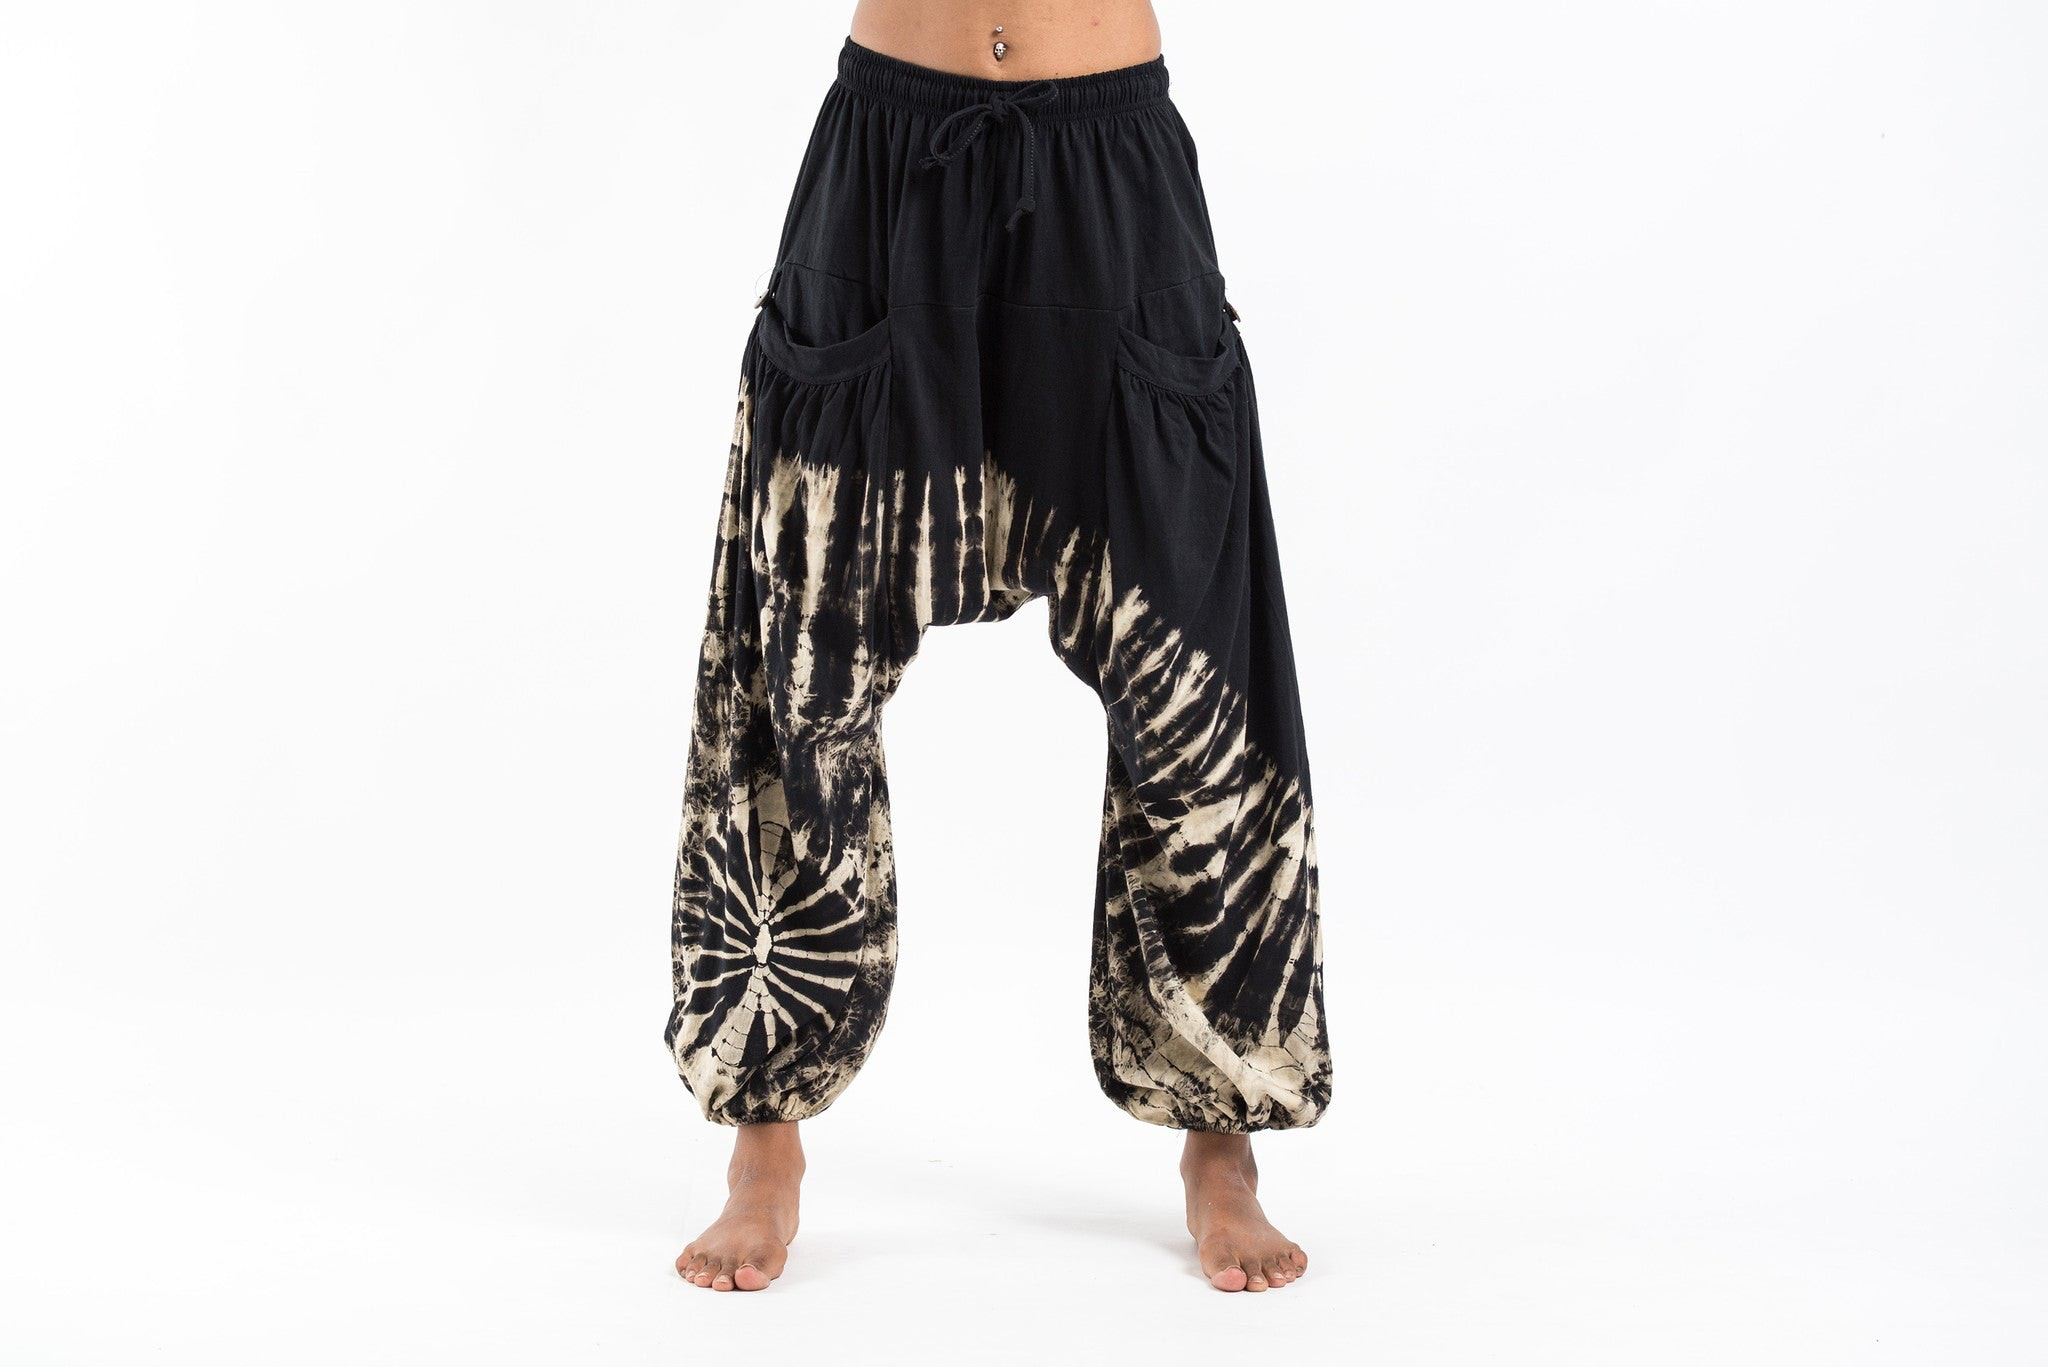 Lastest Tie Dye Cotton Women Harem Pants In Black